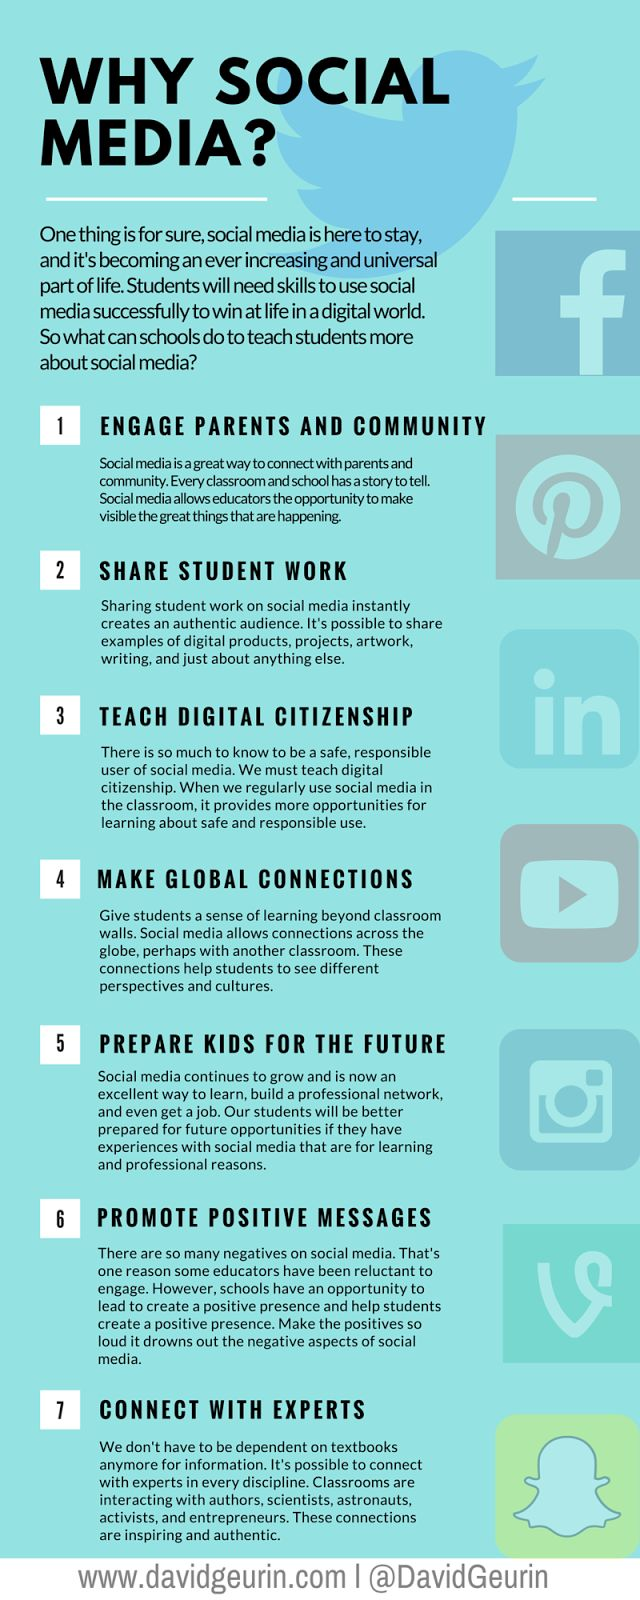 The @DavidGeurin Blog: 7 Reasons To Use Social Media In Your School (INFOGRAPHIC) | One thing is for sure, social media is here to stay. Never before have people been able to connect, share, and learn from one another as we do now. I can only imagine what might be next! As a result, our students need skills to win at life in a digital world. The ability to use social media to support life goals and possibilities can be a game-changer.